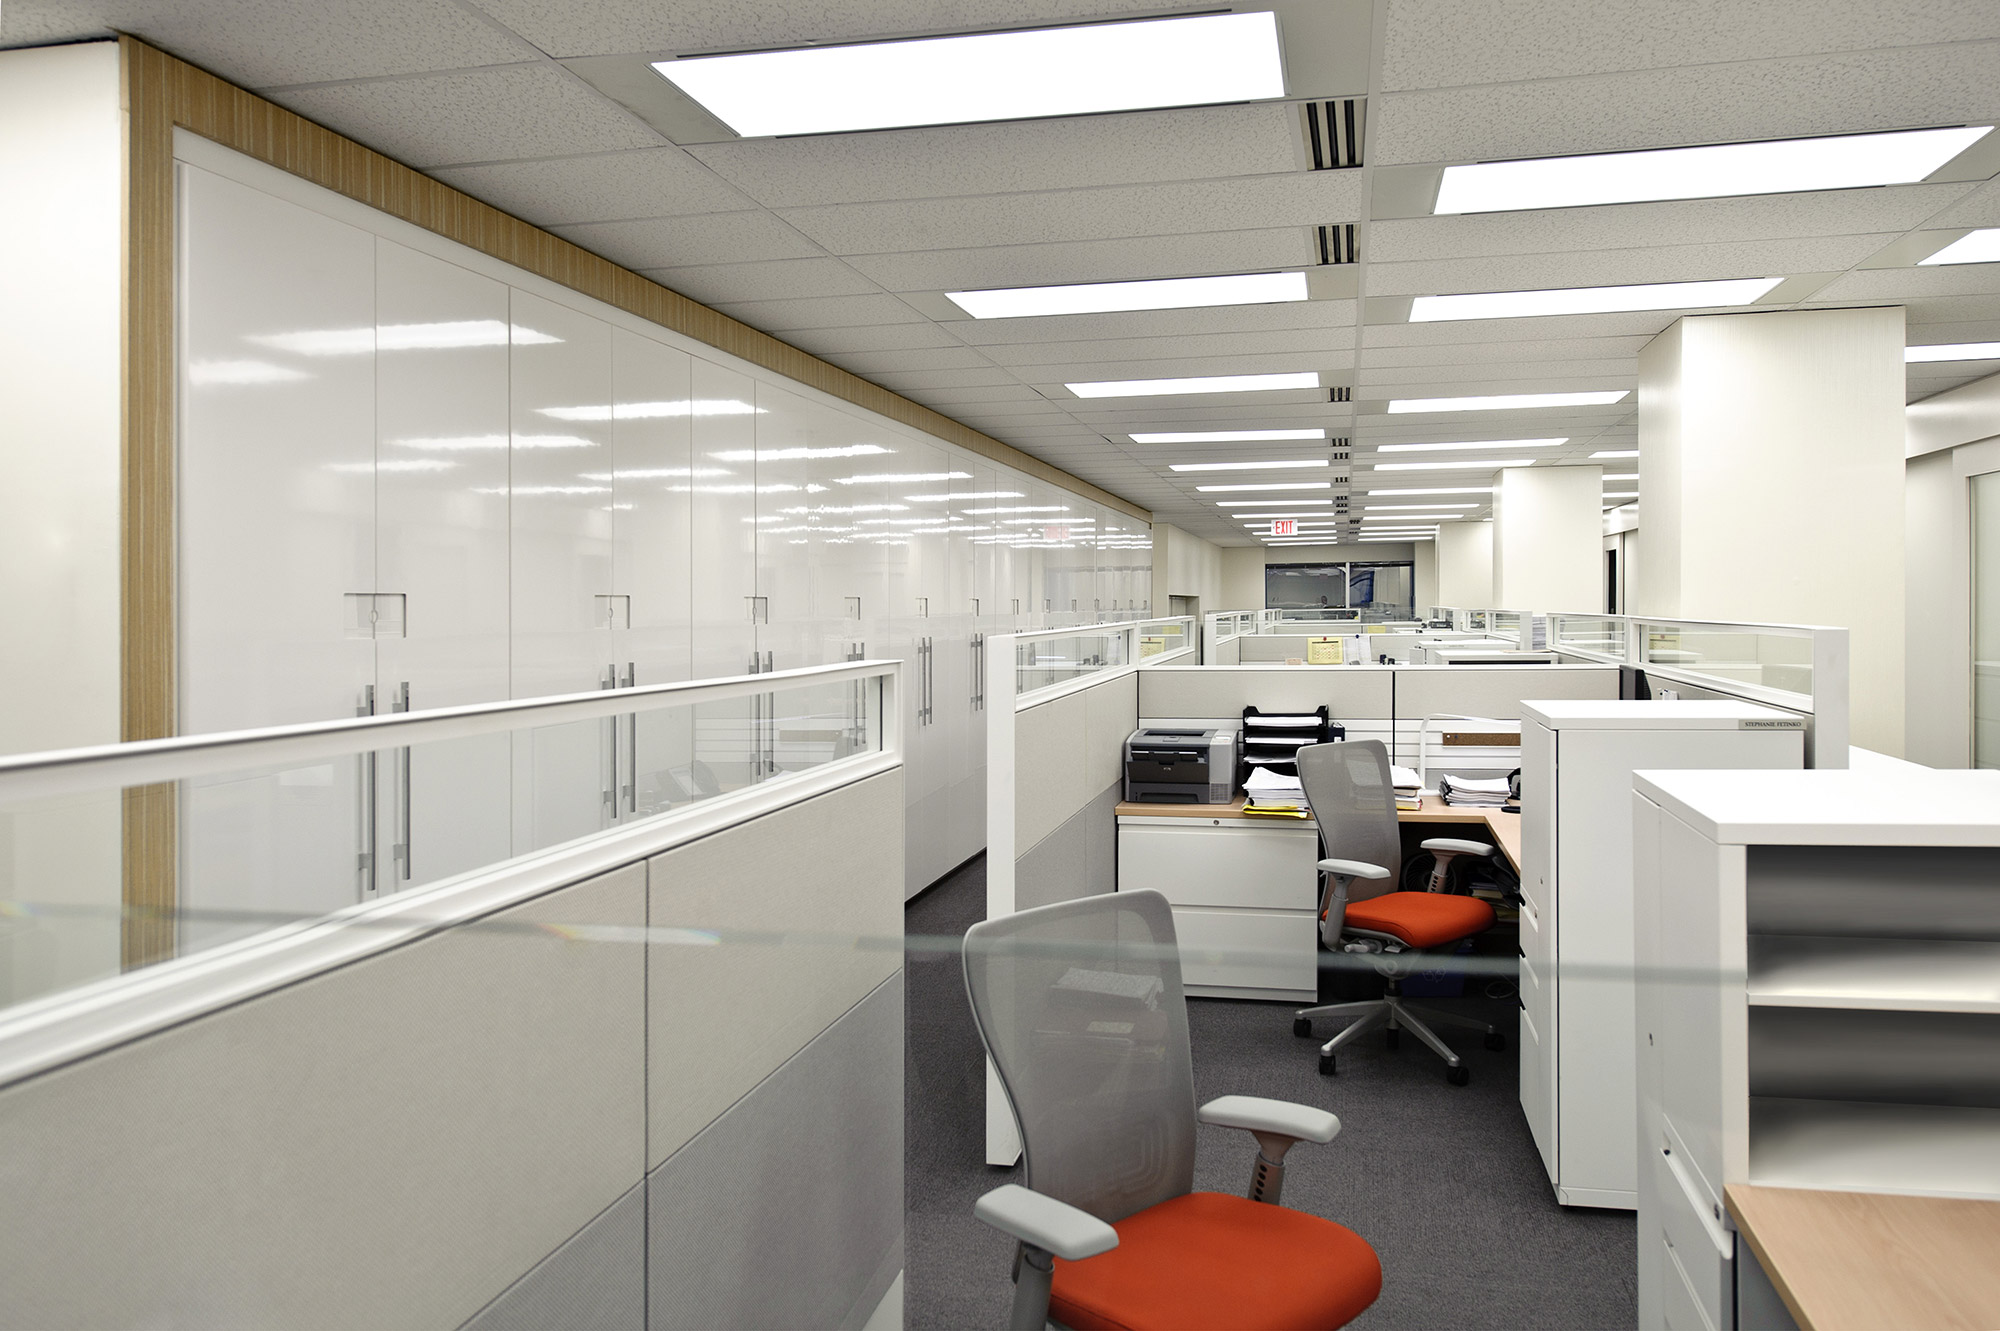 interior-design-legal-office-cubicles.jpg